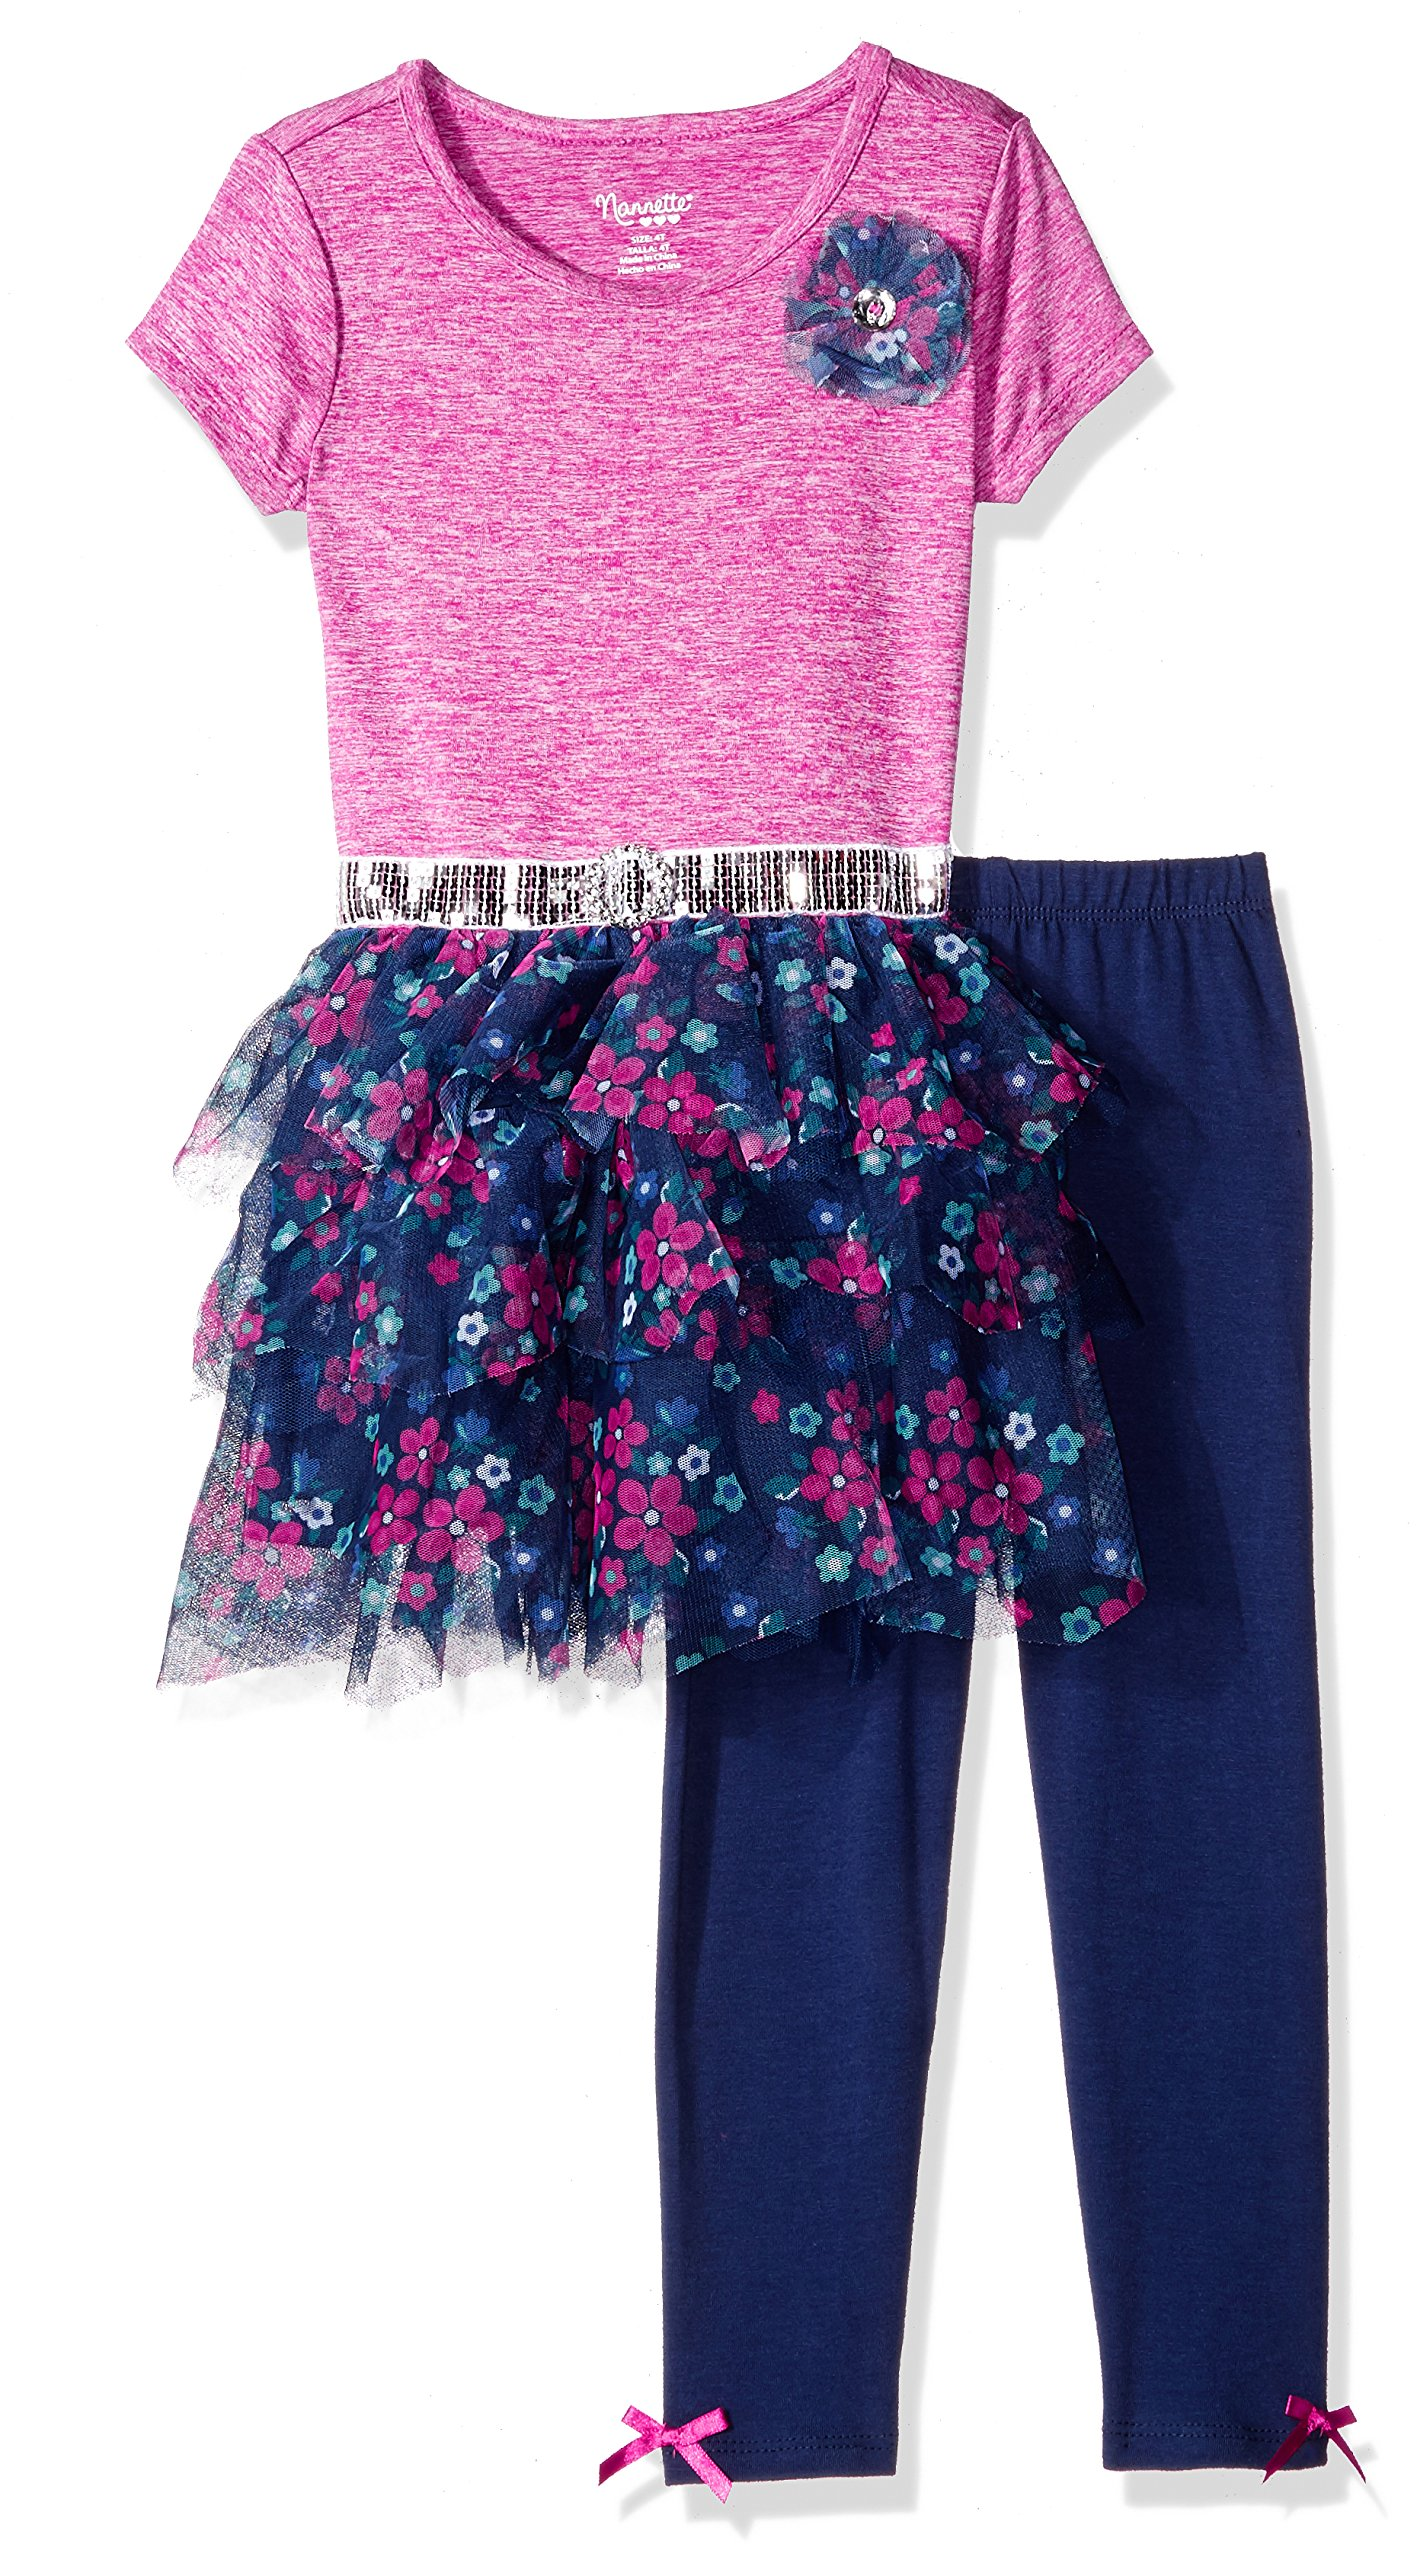 Nannette Little Girls' Toddler 2 Piece Fashion Legging Set with Space Dyed Top, Pink, 4T